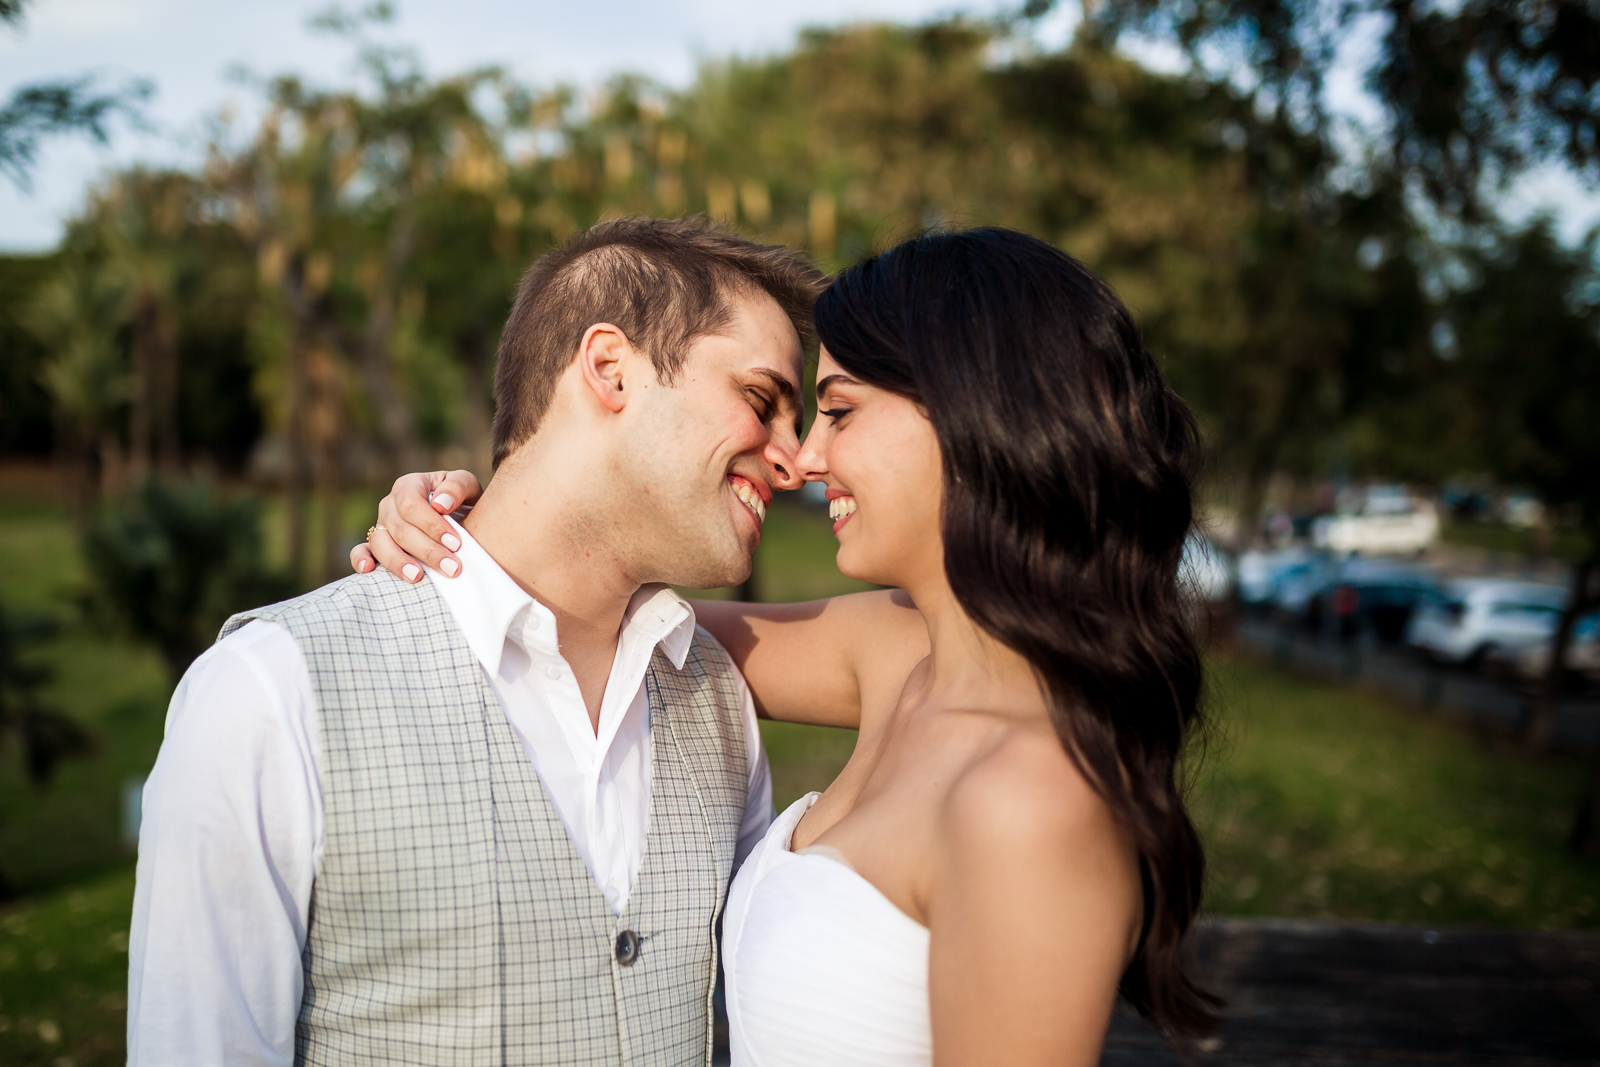 lovely Jewish couple wedding portrait in the park